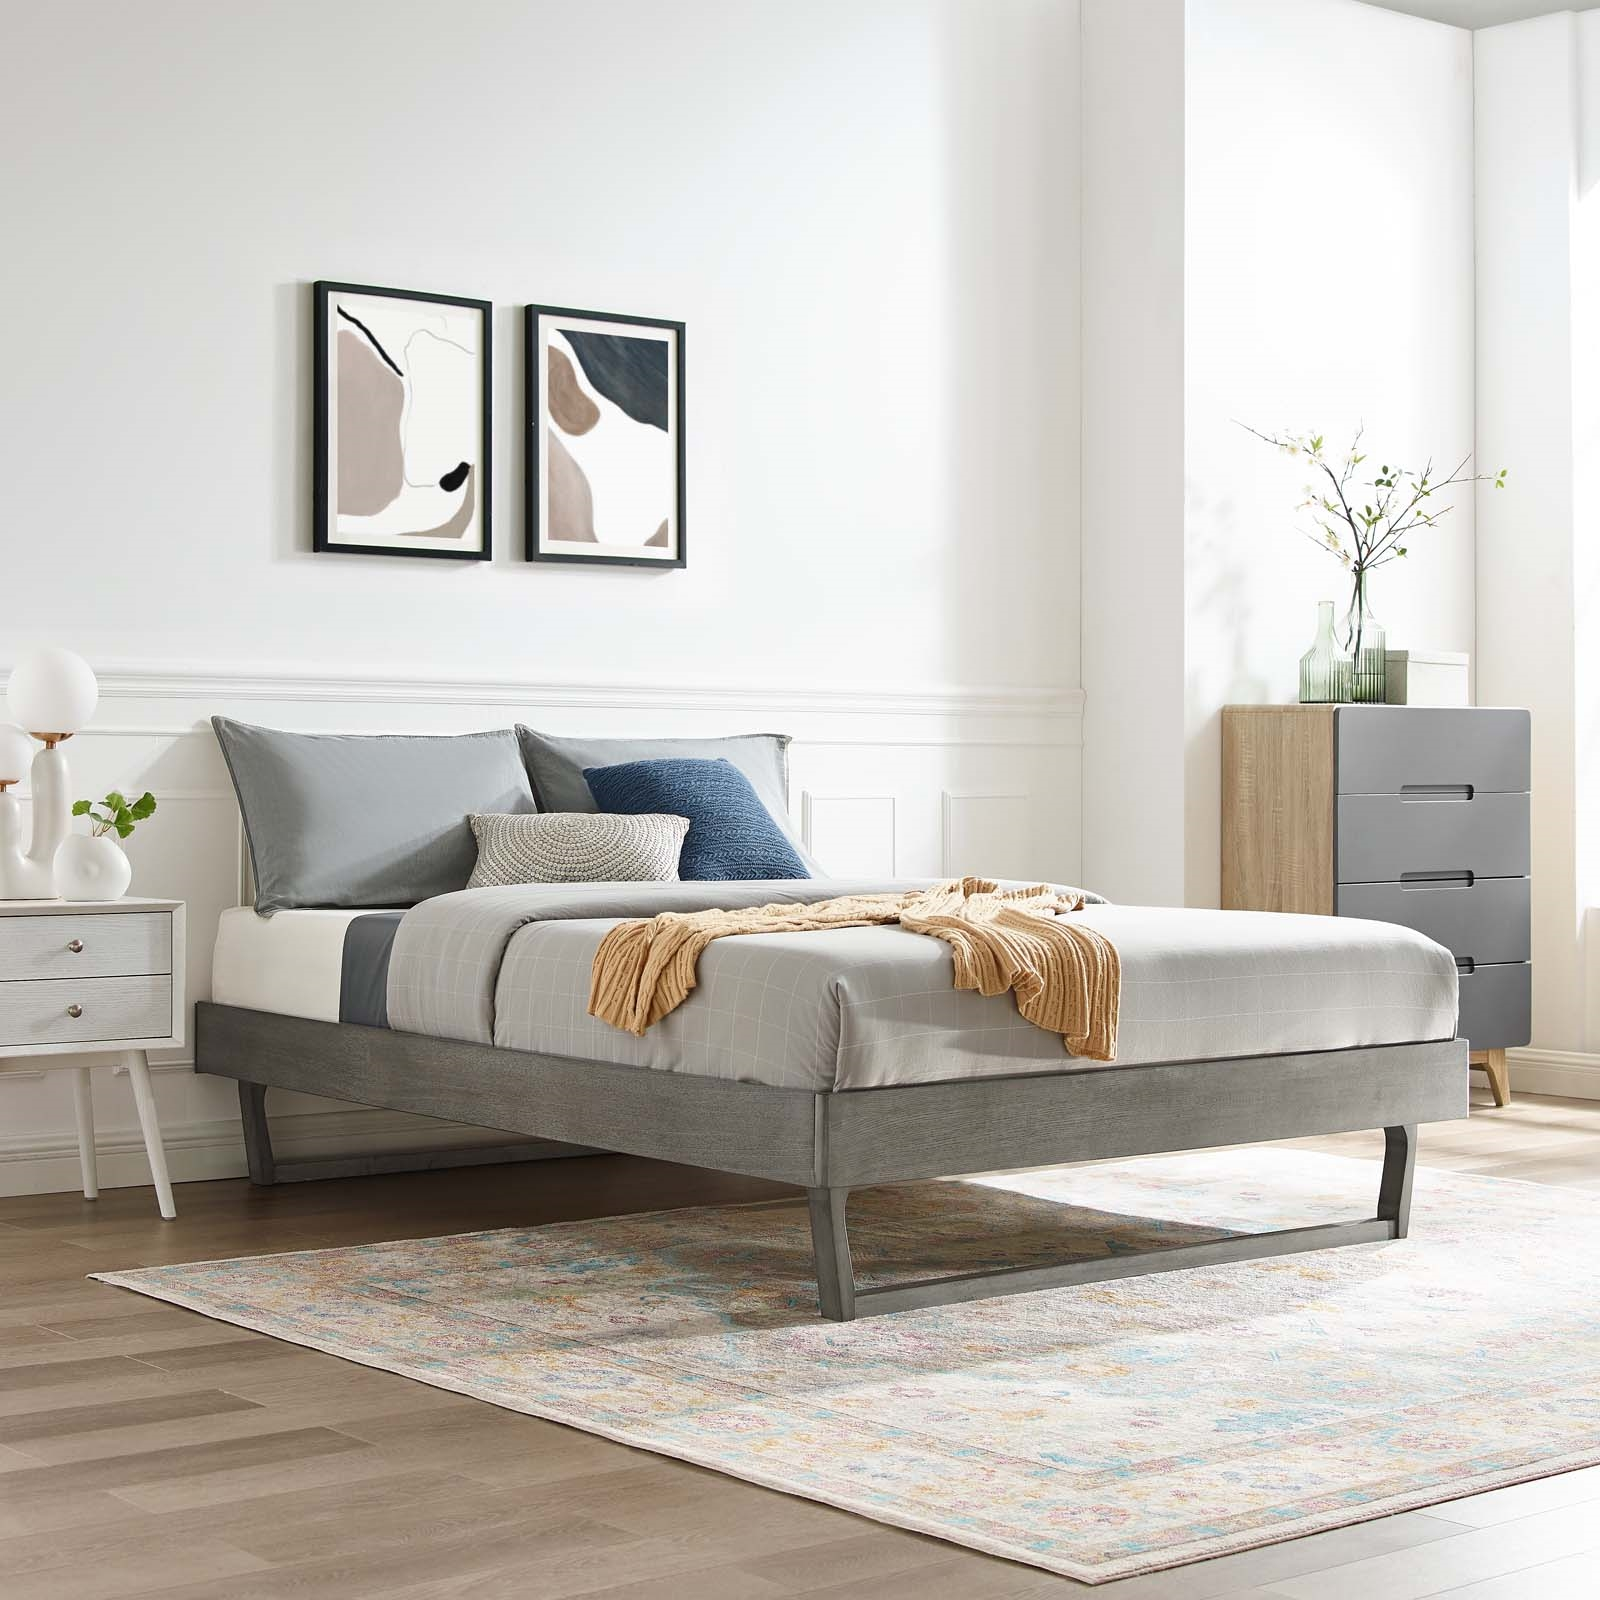 Billie King Wood Platform Bed Frame in Gray